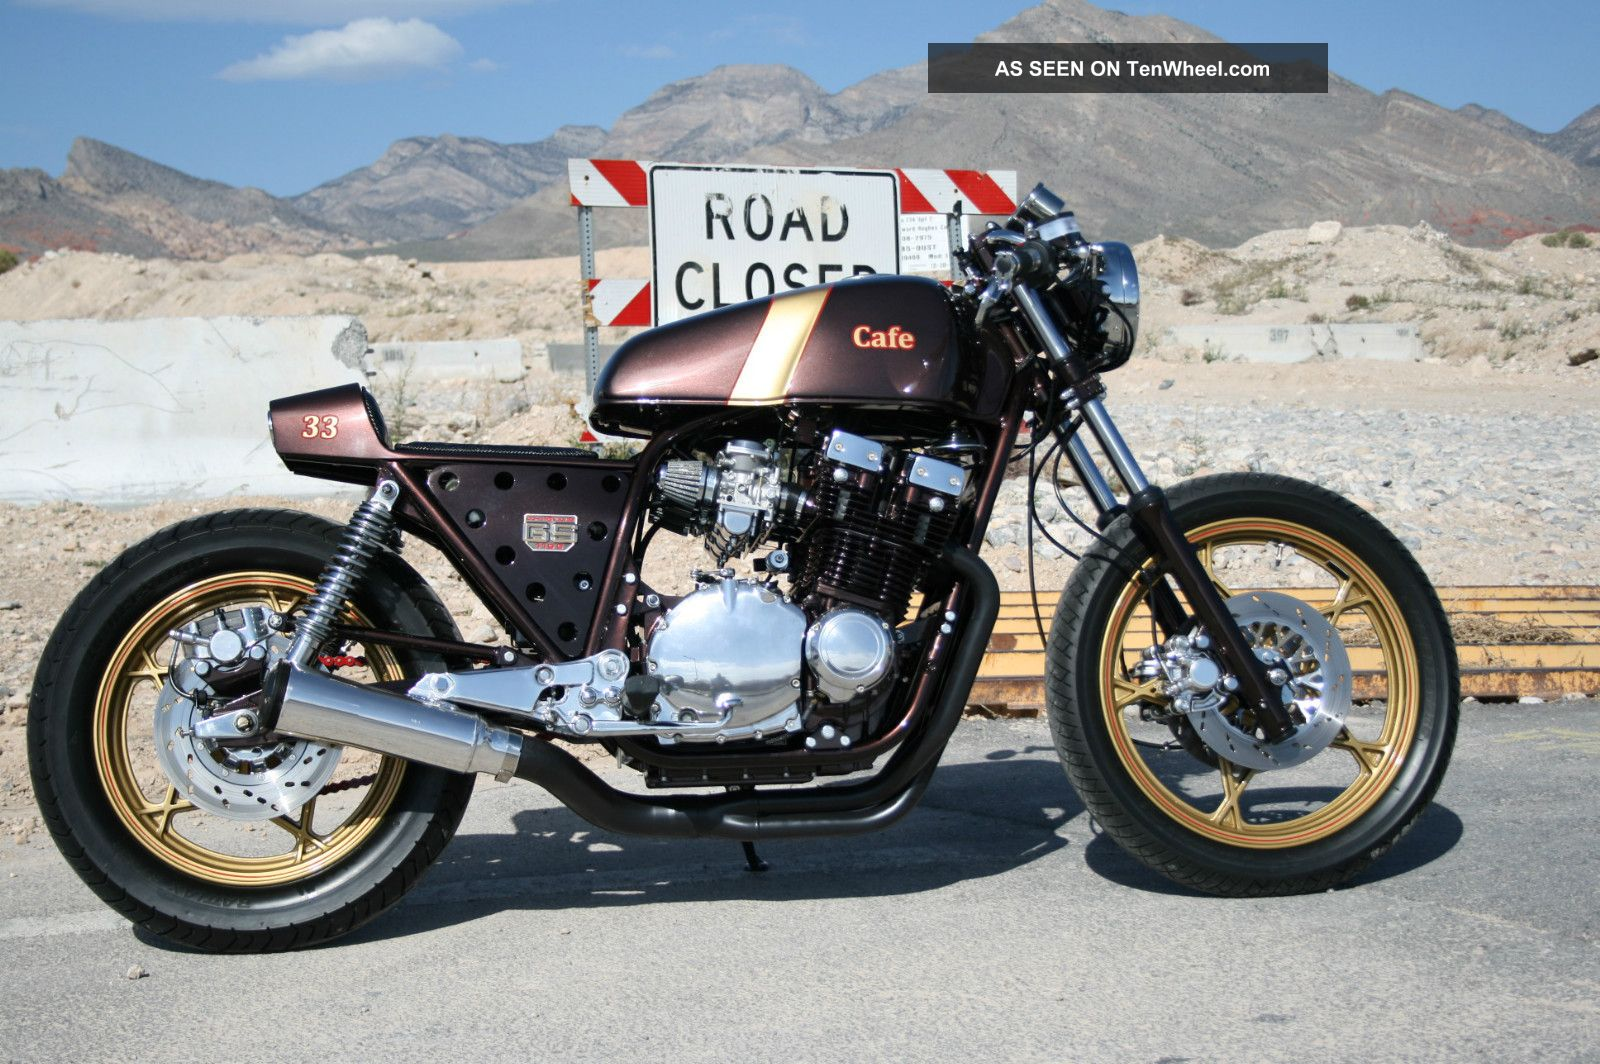 Suzuki Cafe Racer Motorcycles 1600 x 1064 · 319 kB · jpeg